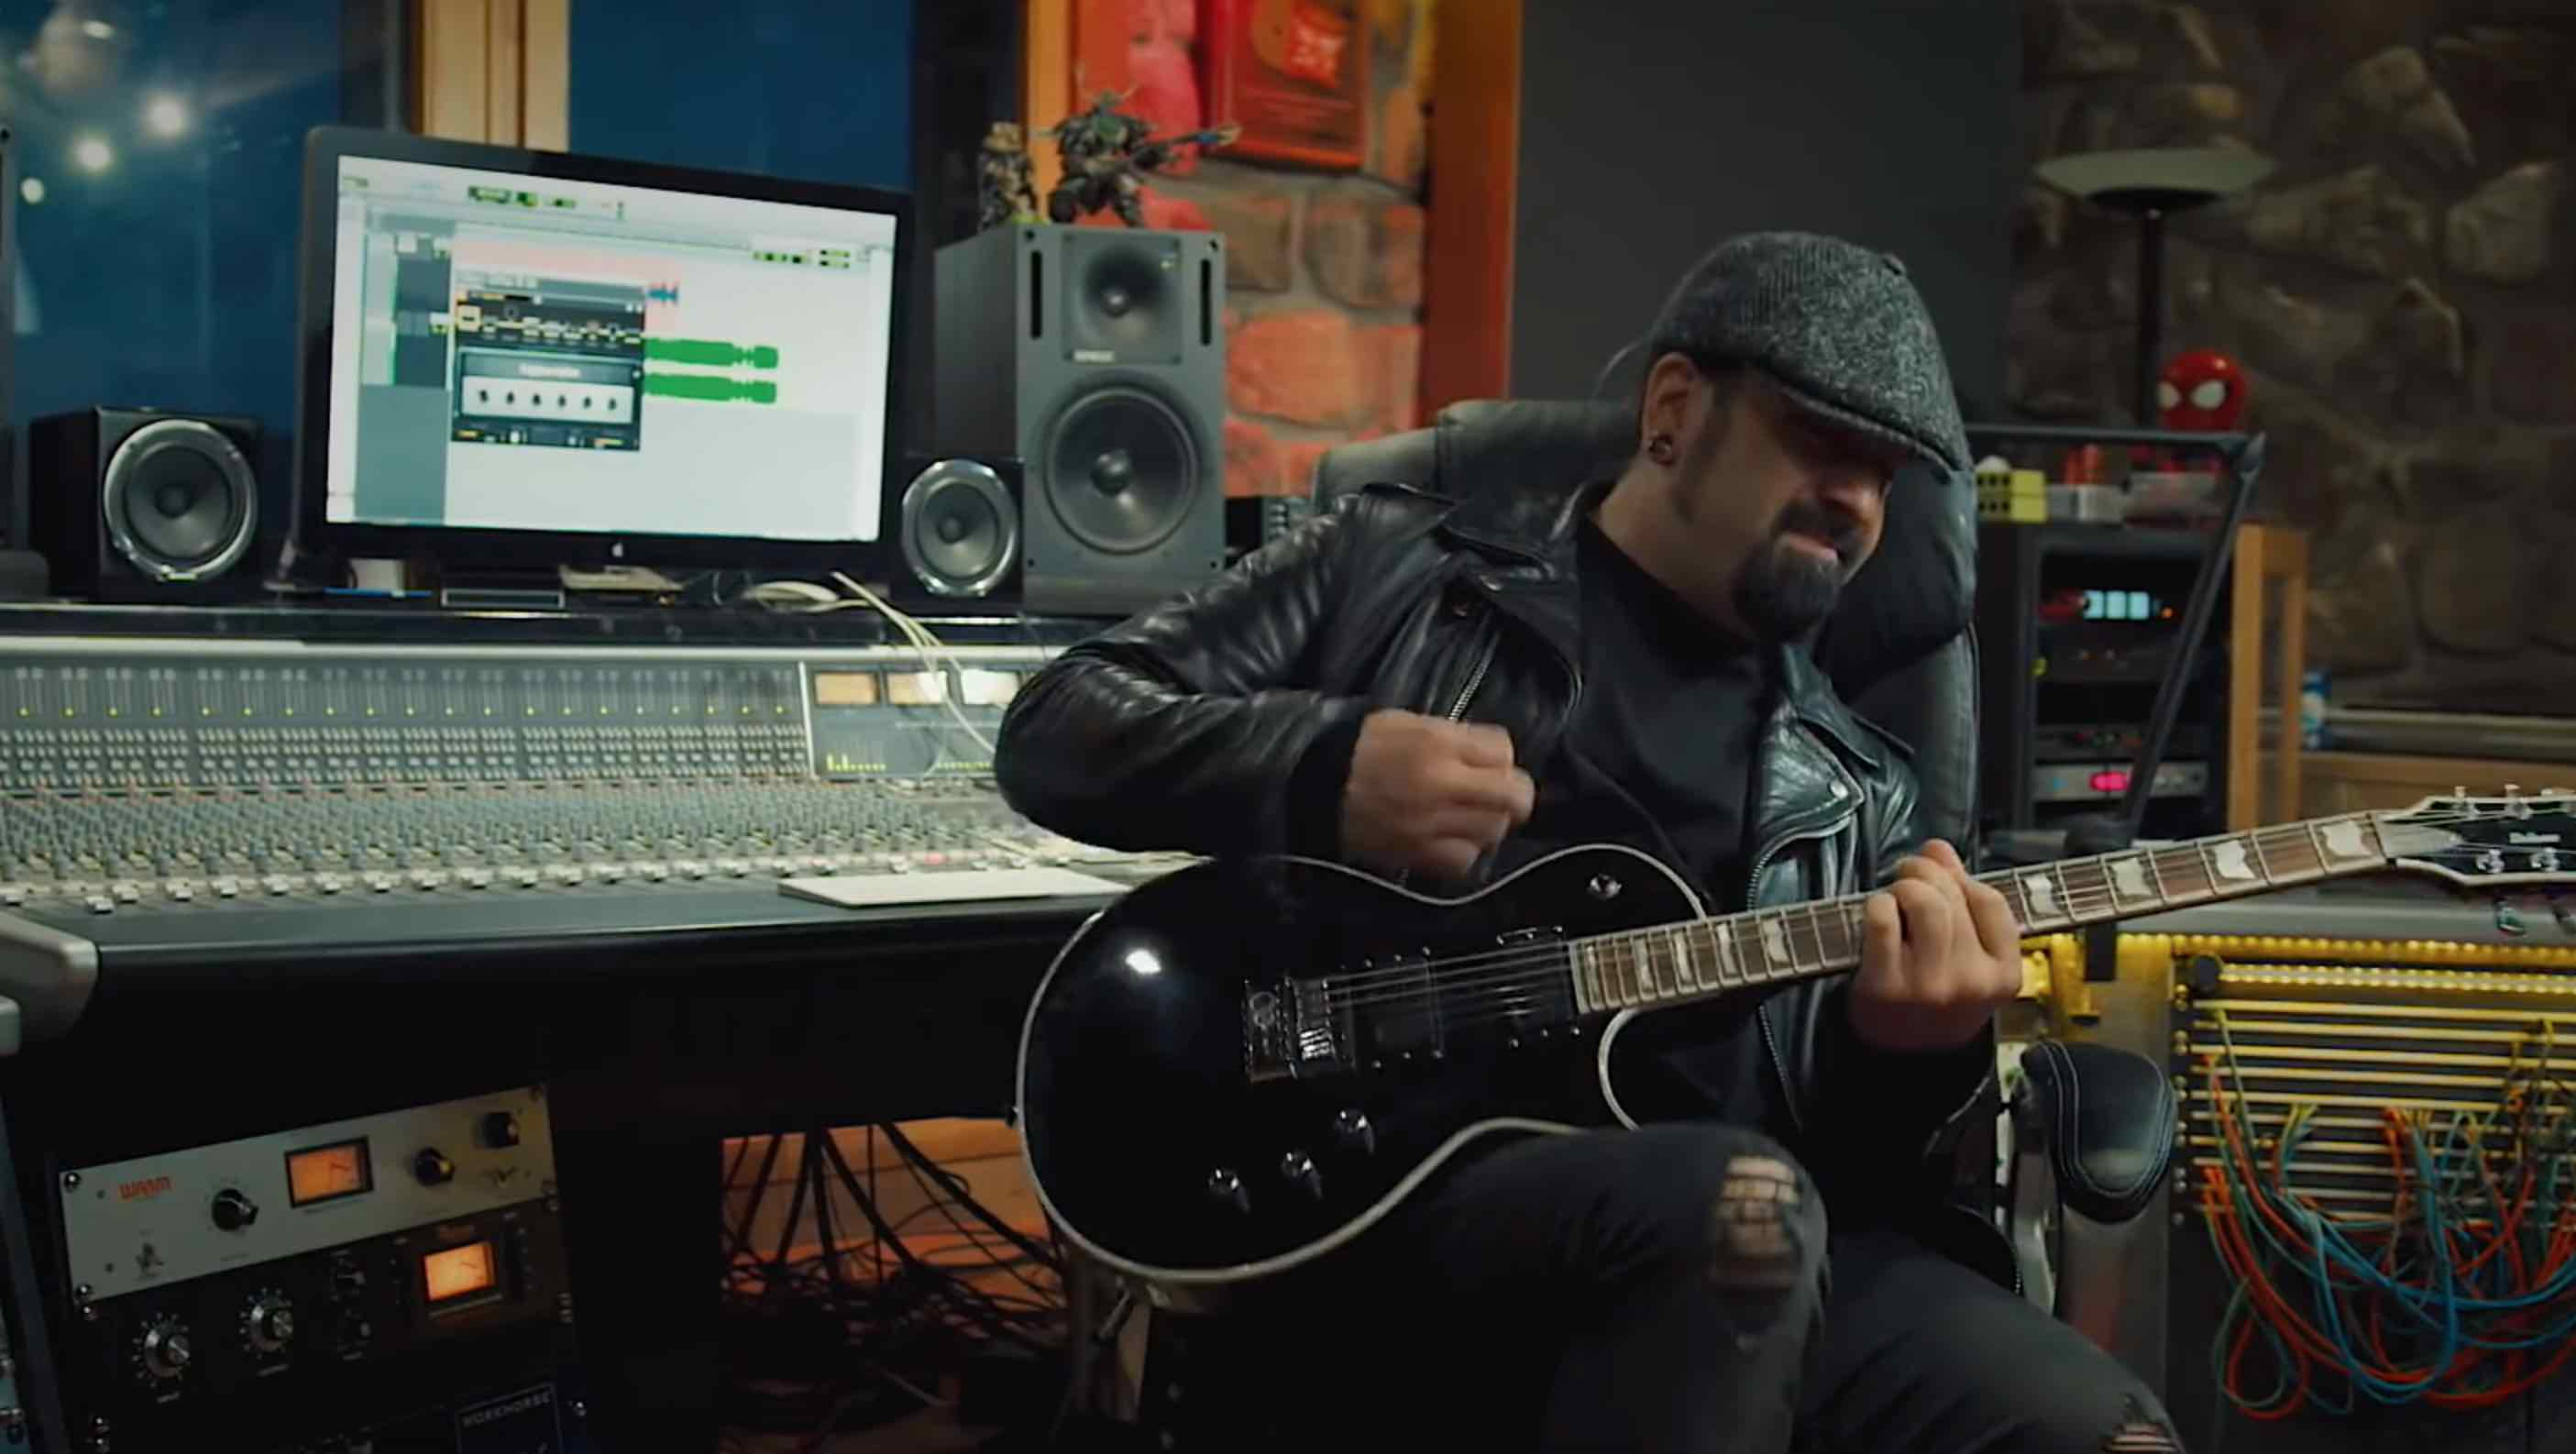 WATCH: ROB CAGGIANO OF VOLBEAT ON BIAS AMP 2